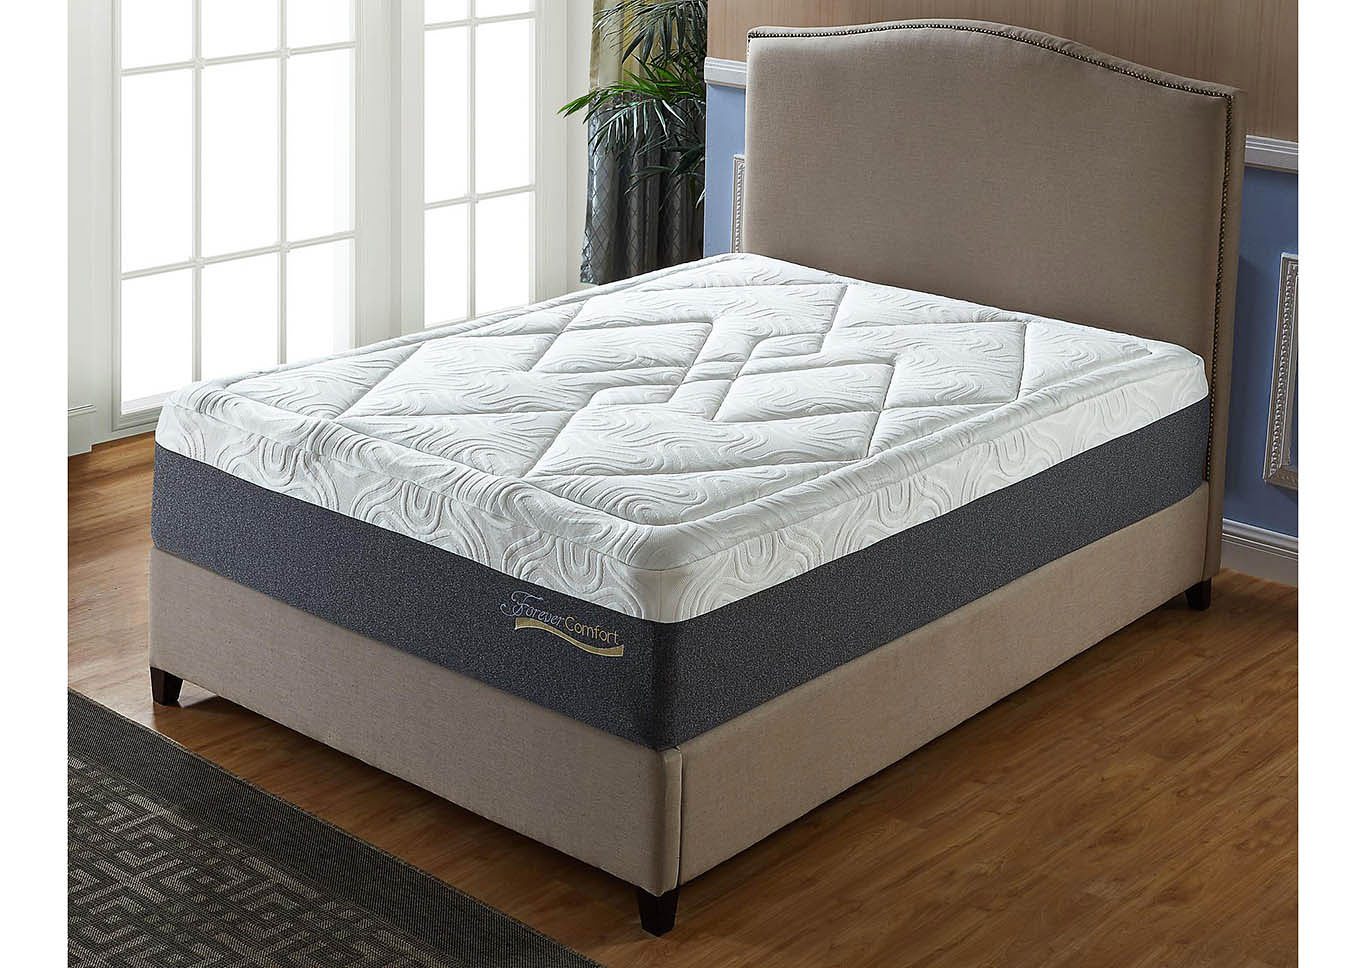 14 Gel Memory Foam Mattress Queen Size,Global Trading